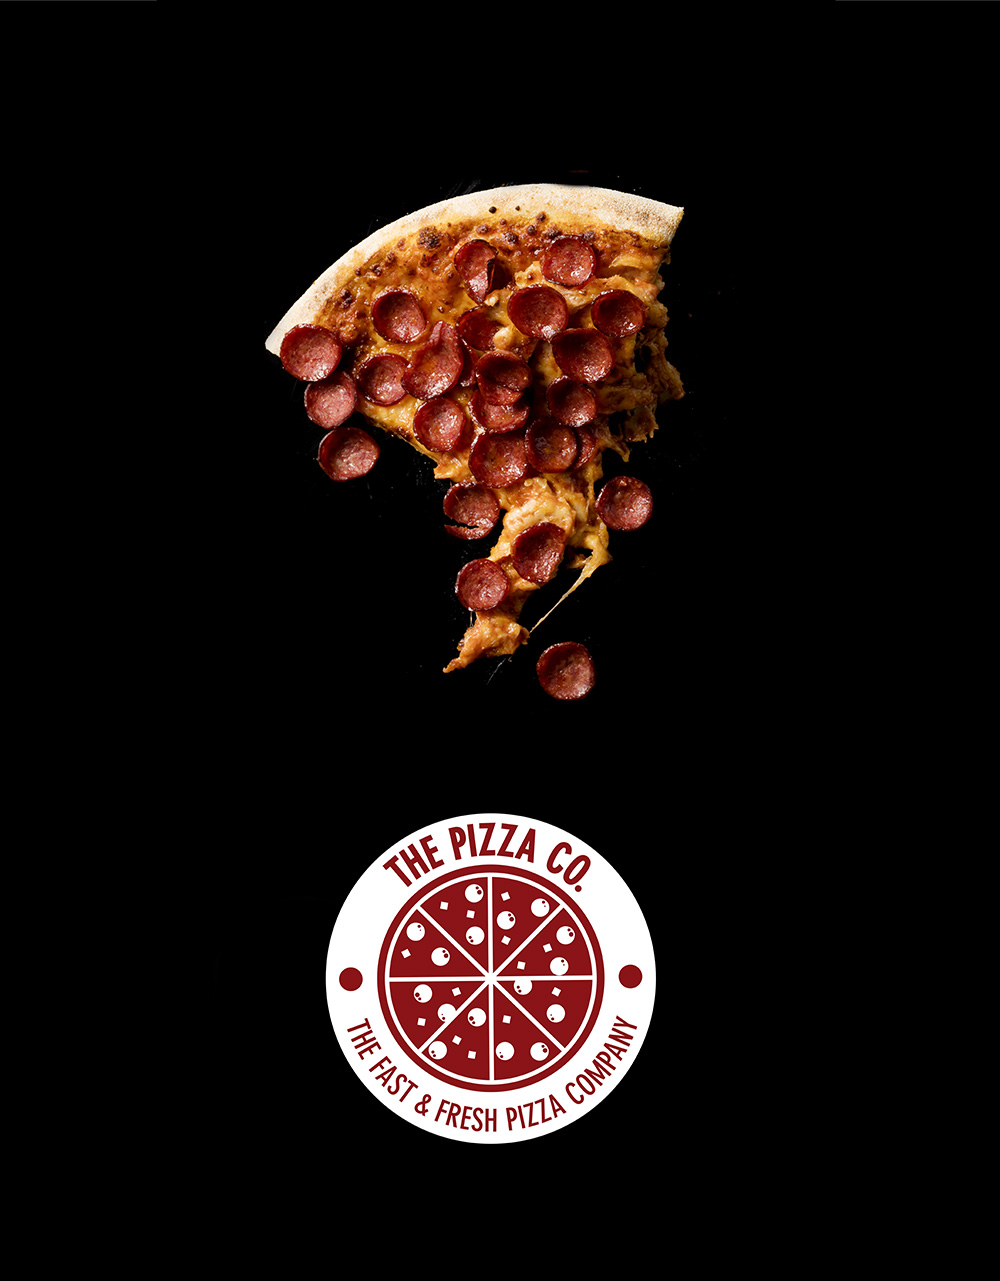 Client: The Pizza Co.